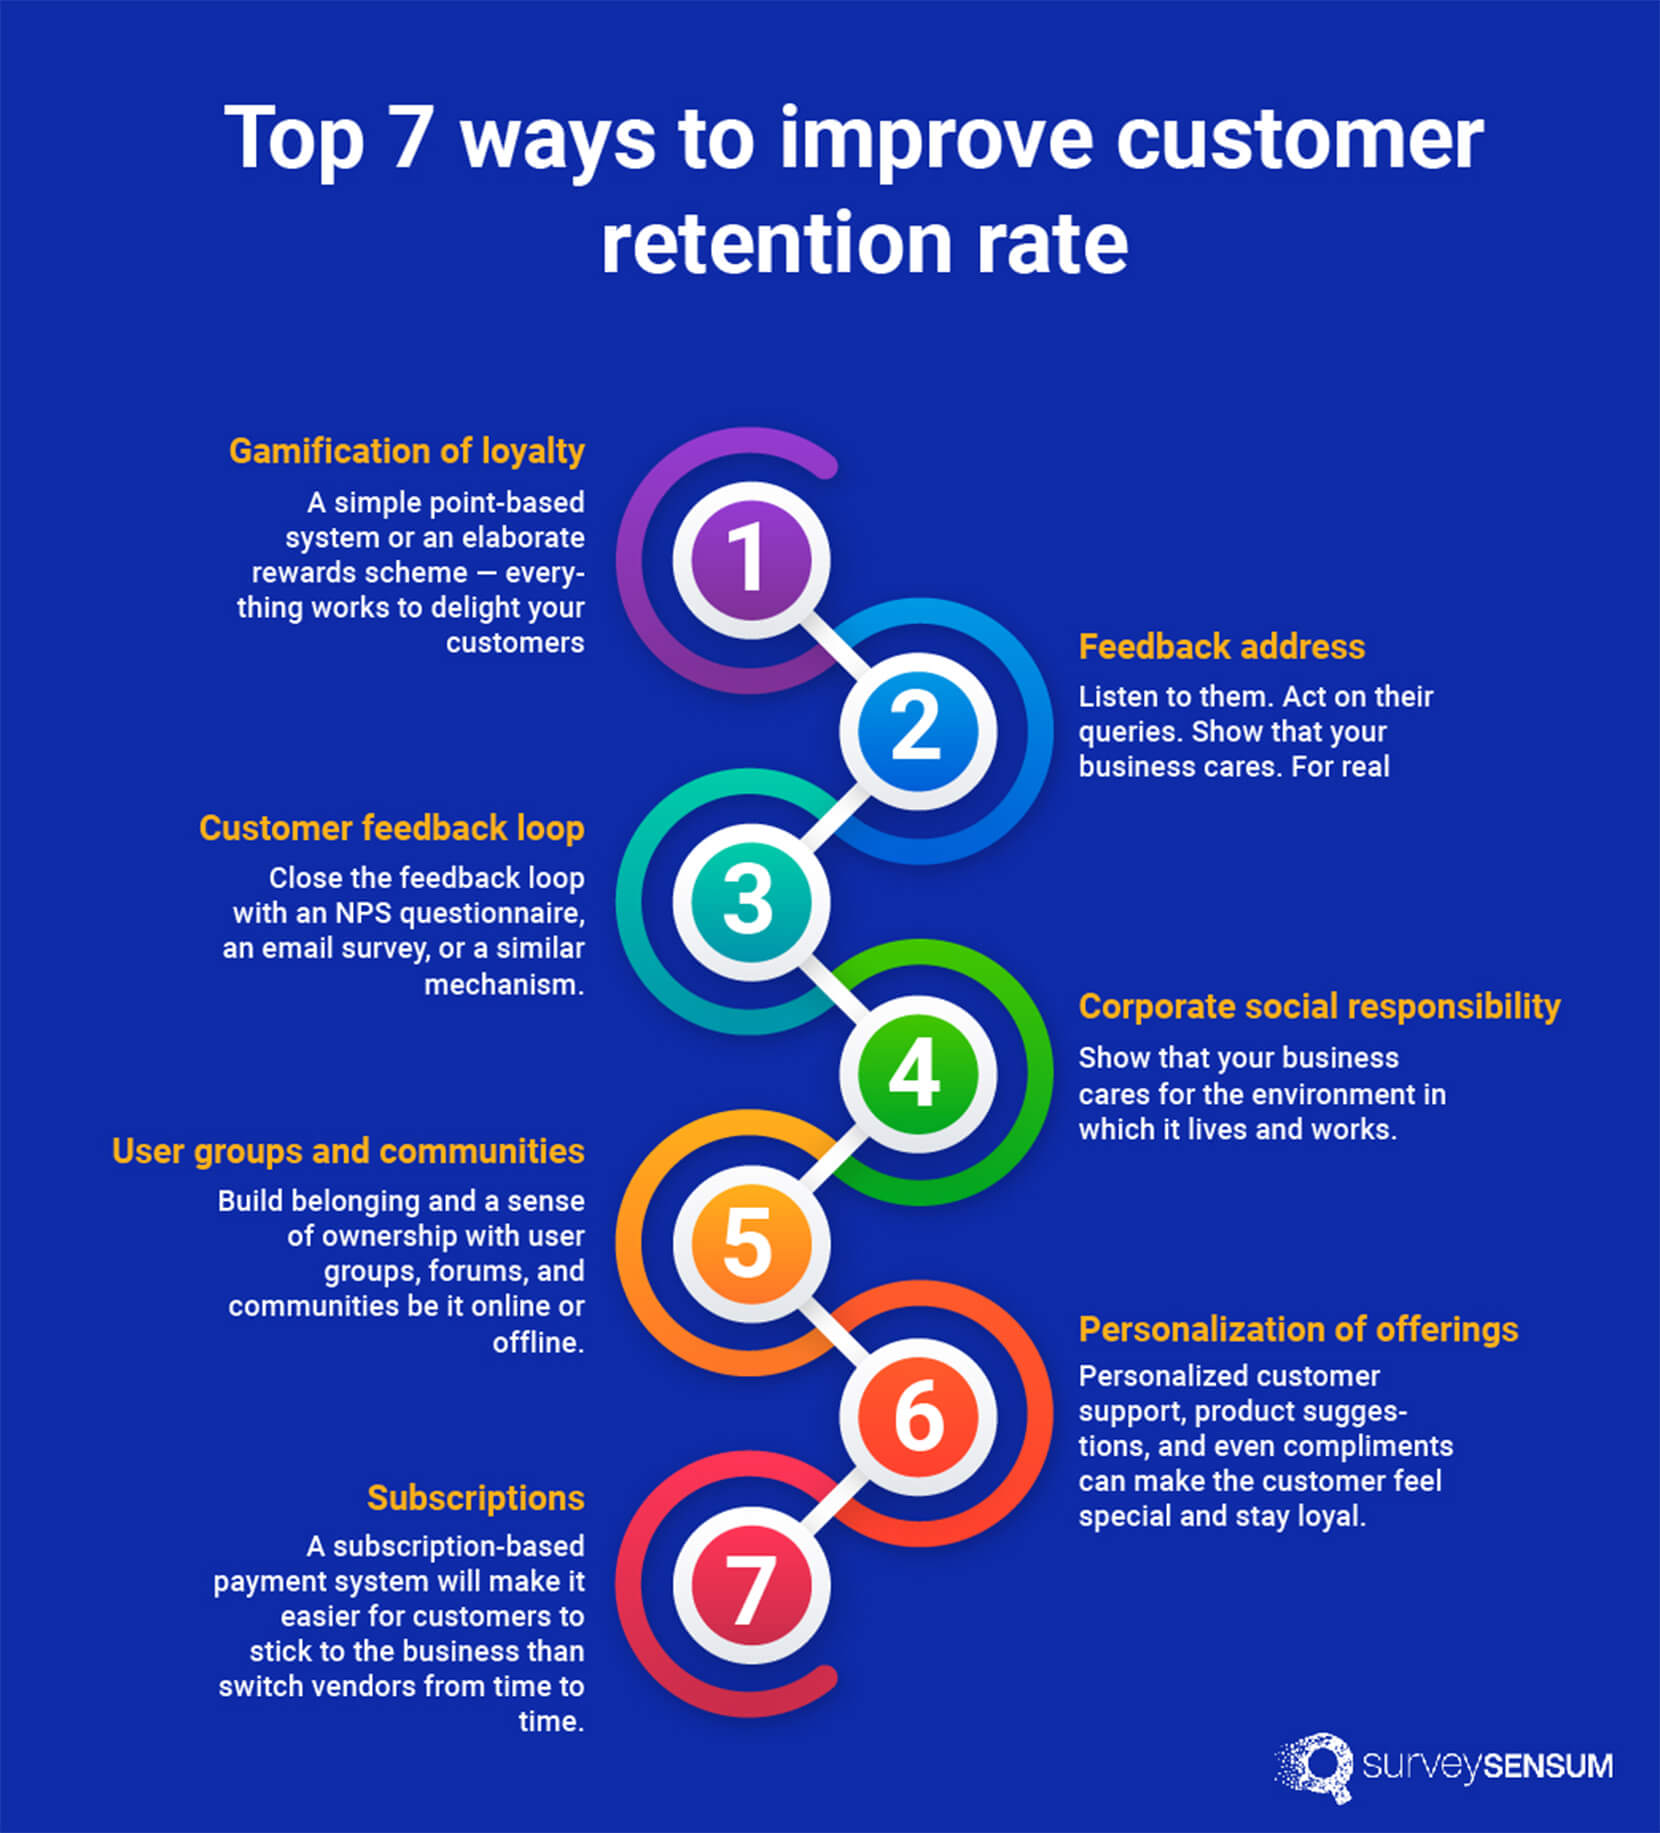 7 ways to improve customer retention rate